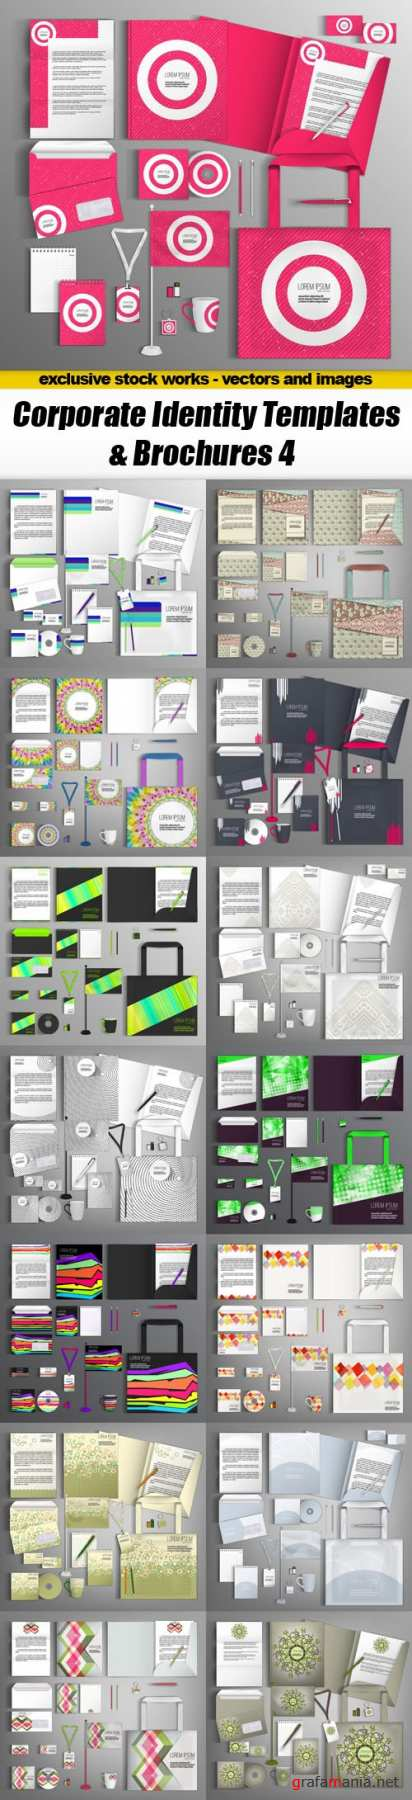 Corporate Identity Templates & Brochures 4 - 15xEPS